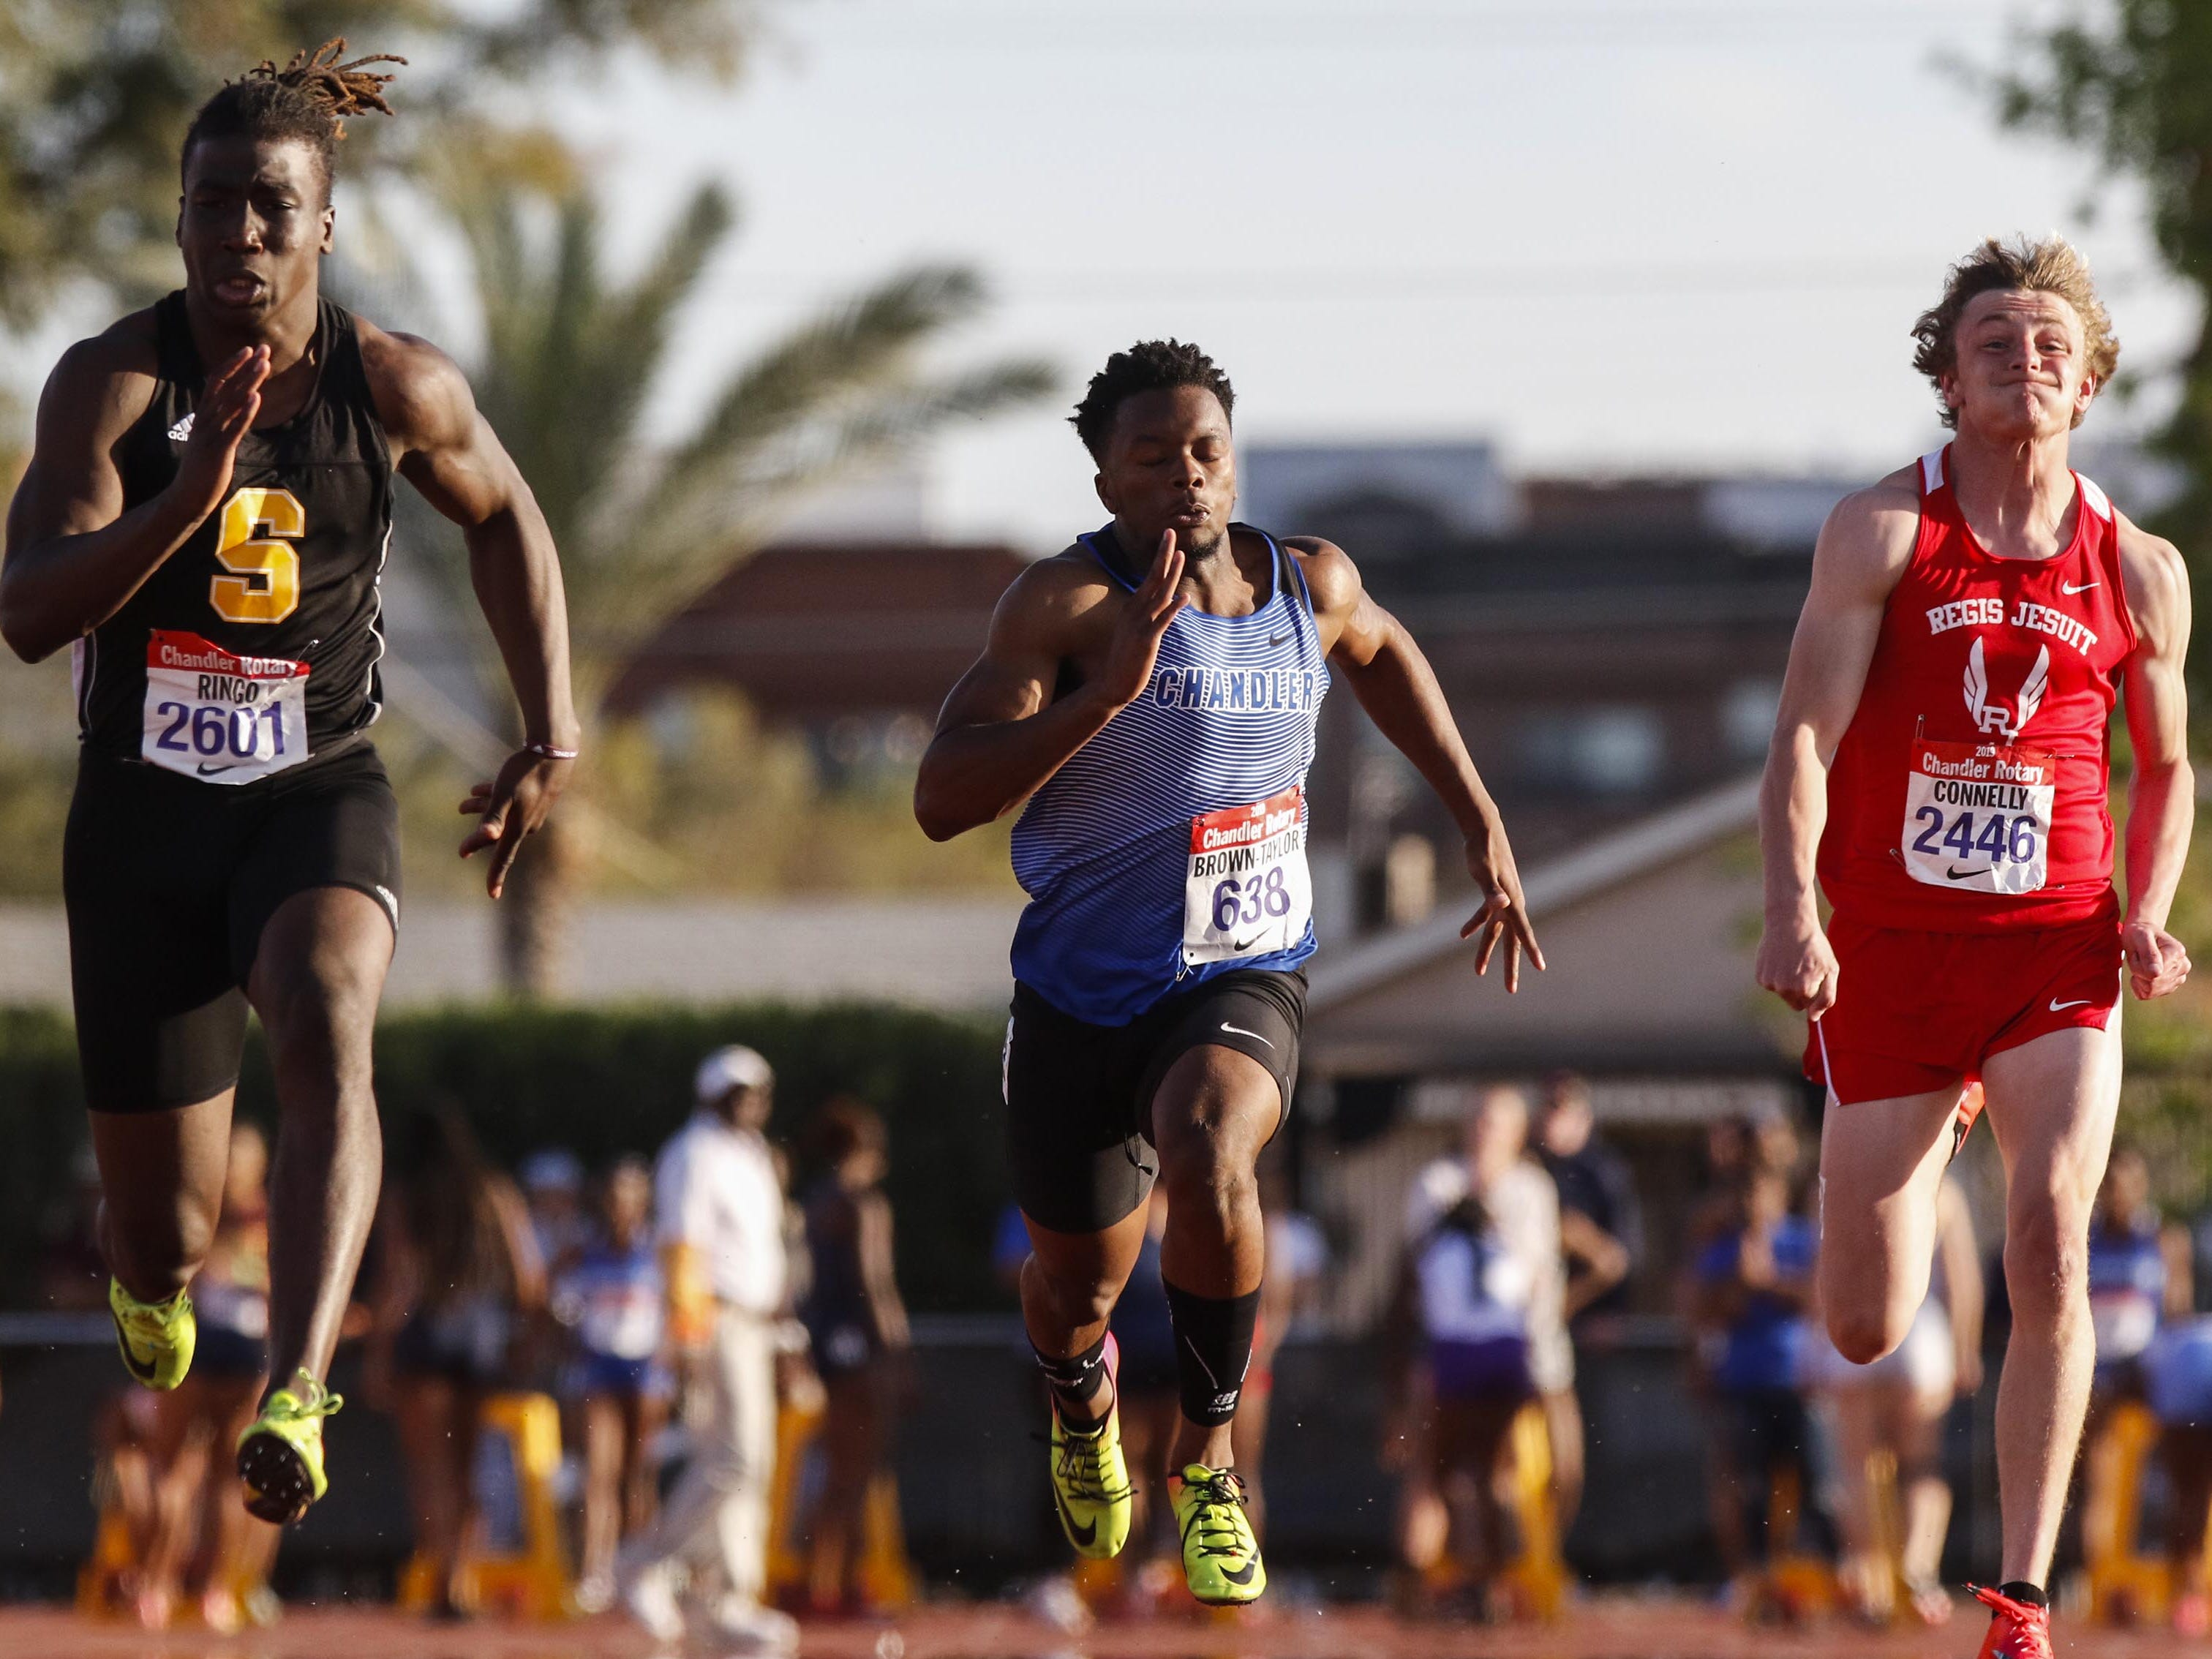 Saguaro's Kelee Ringo leads the 100 meters against Chandler's Quaron Adams and Jackson Connelly of Regis Jesuit during the 79th Annual Nike Chandler Rotary Invitational  March 23, 2019.